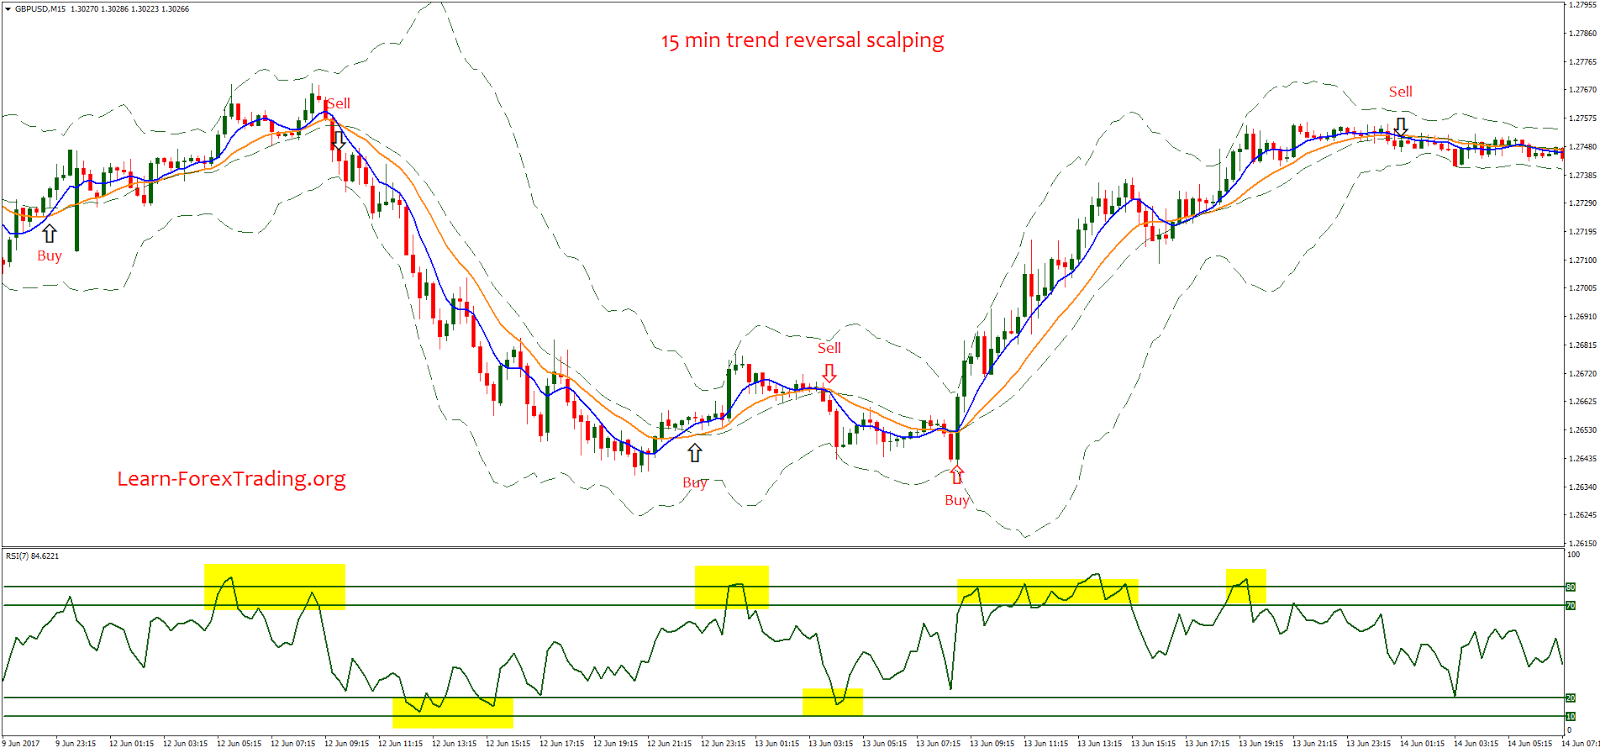 Forex trend reversal scalping fii investment in india rbi